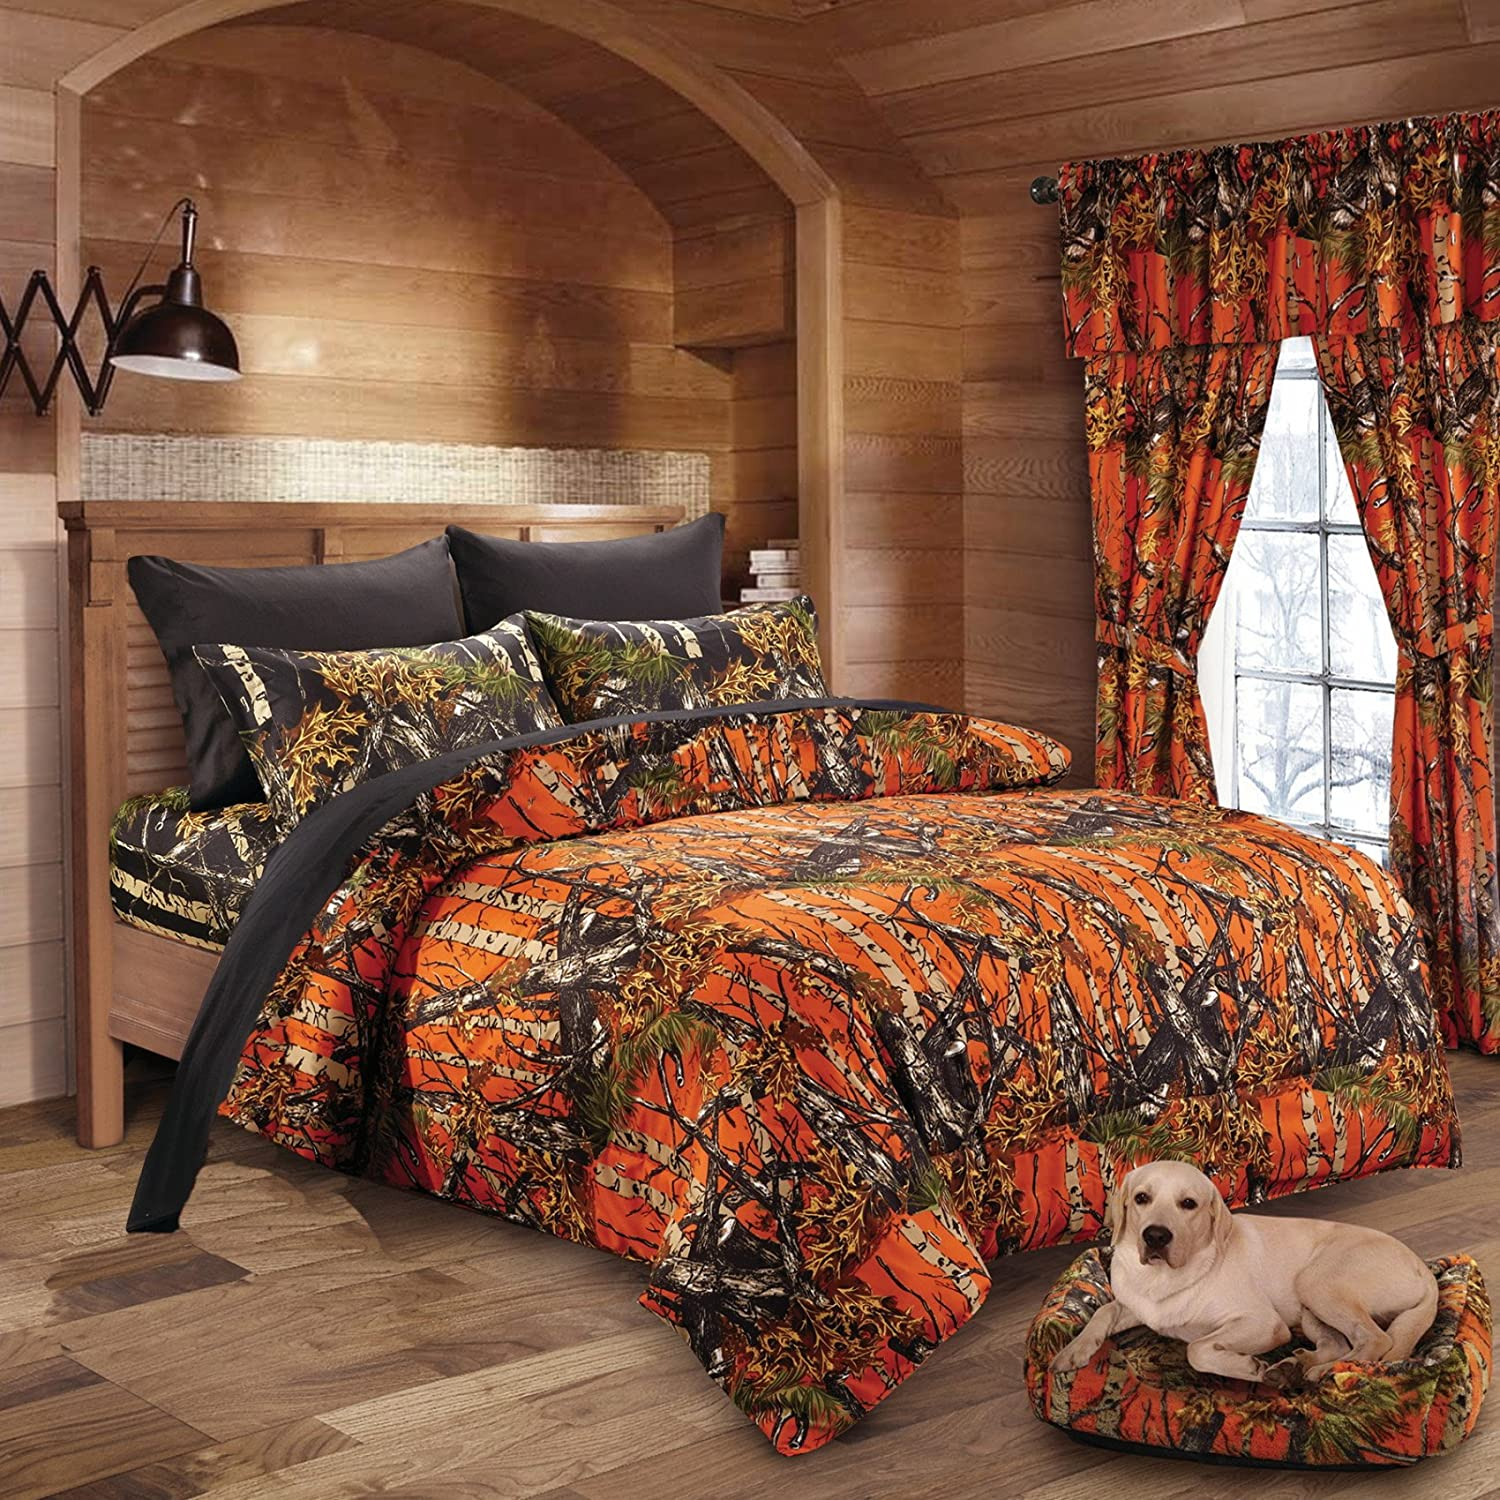 bed queen premium camo luxury deep sets woods products collections hats tees original black camouflage the bedding comforte hunting hoodies midnight